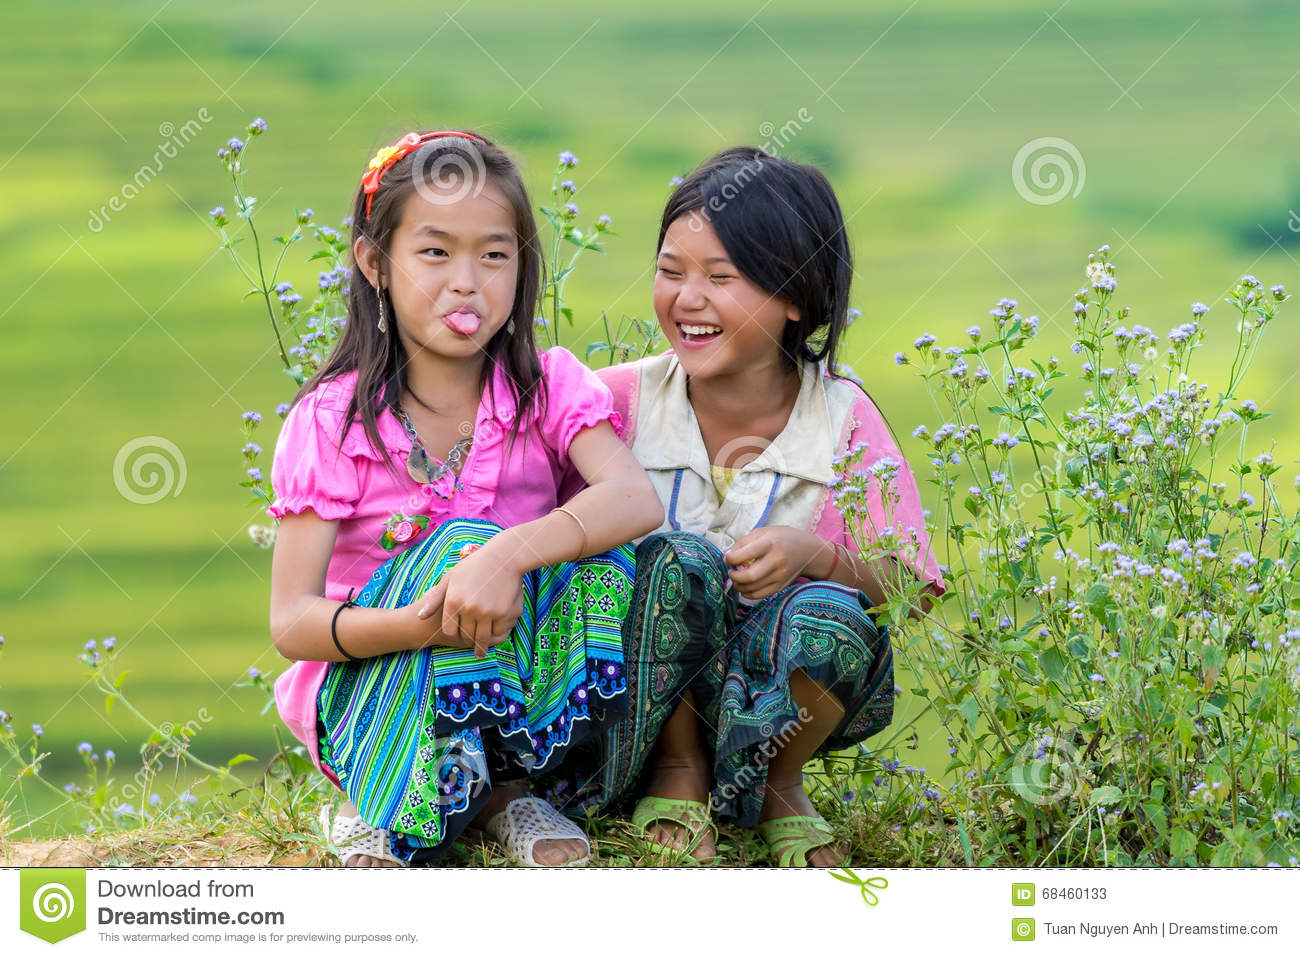 Hmong children smiling in rice terrace river side